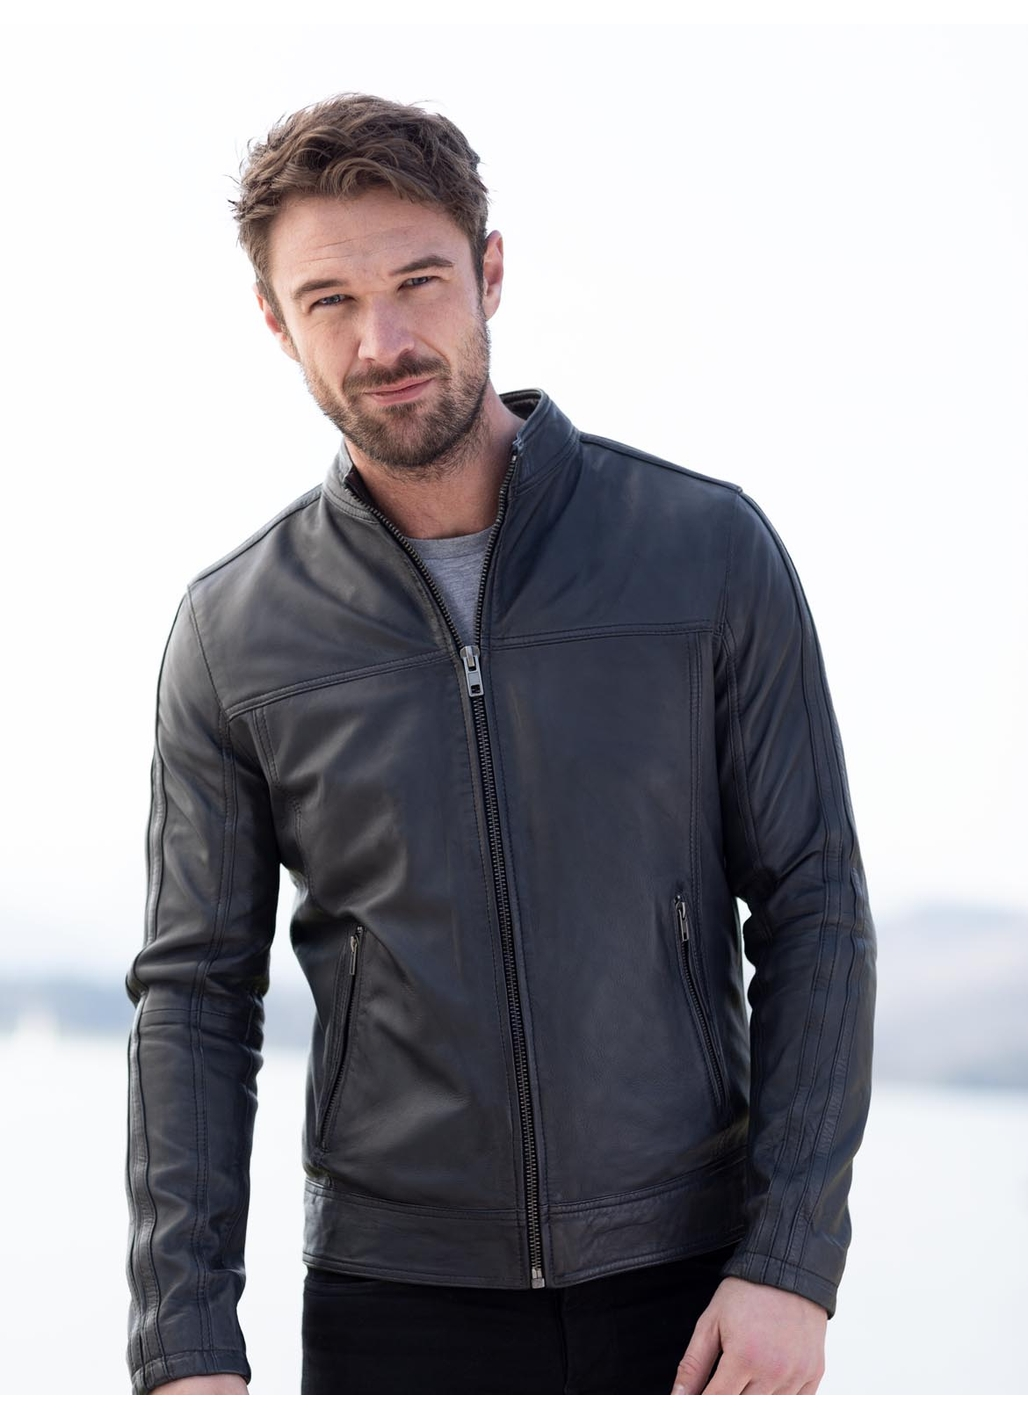 Eamont Leather Jacket in Graphite Grey